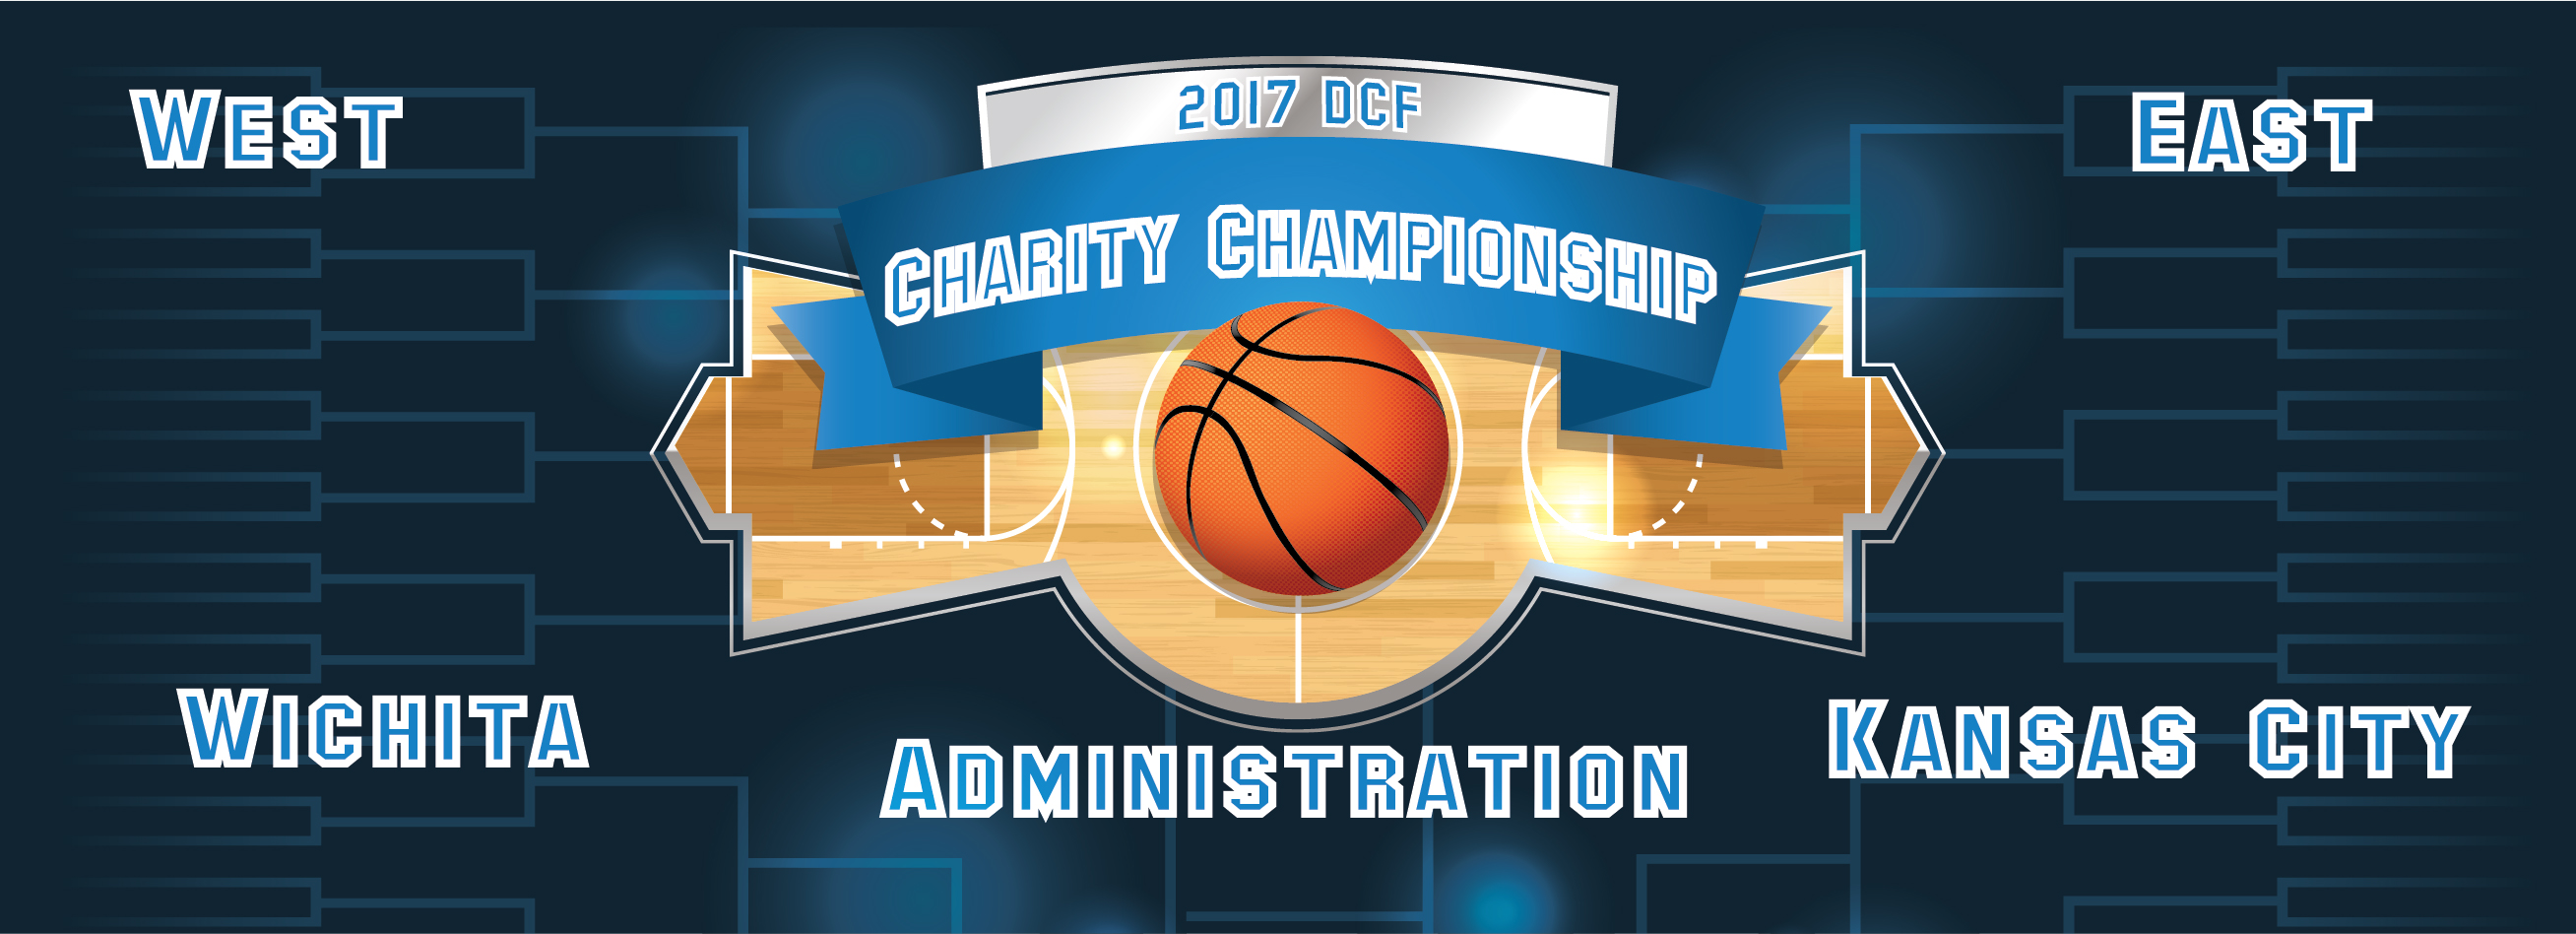 Charity Championship Email Banner 2017.jpg